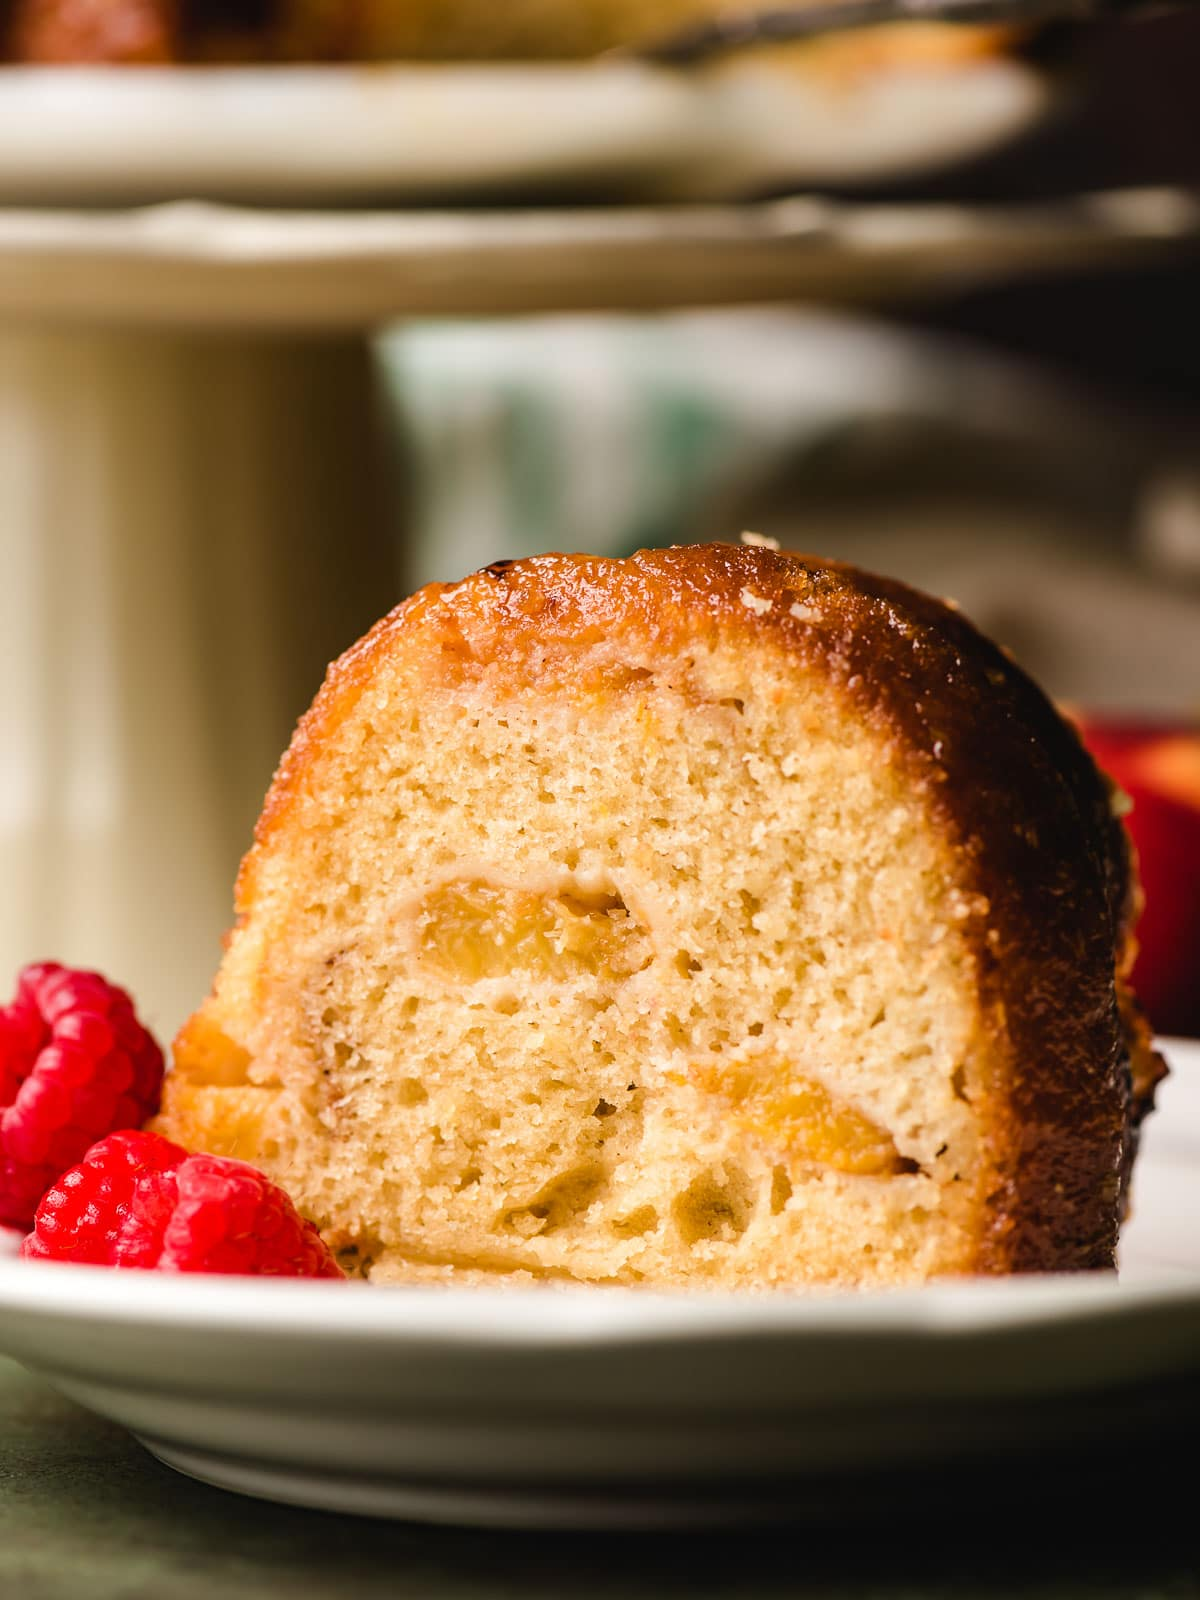 Sliced of peach bundt cake on a white plate with raspberries.